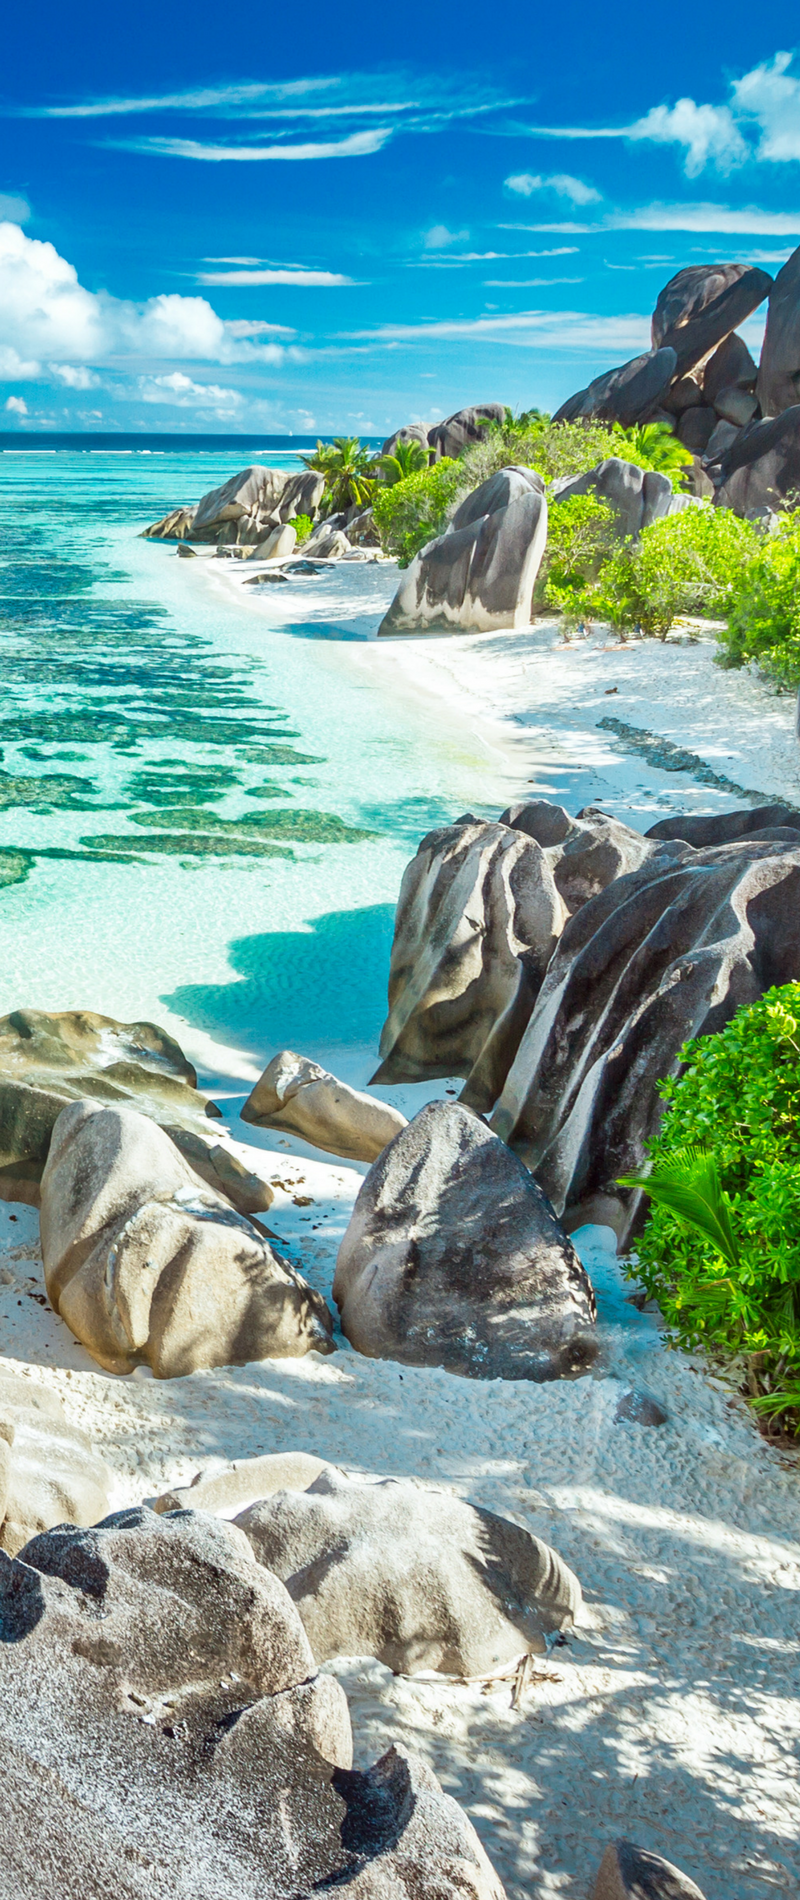 Seychelles Travel Guide: The Best Beach Destination You